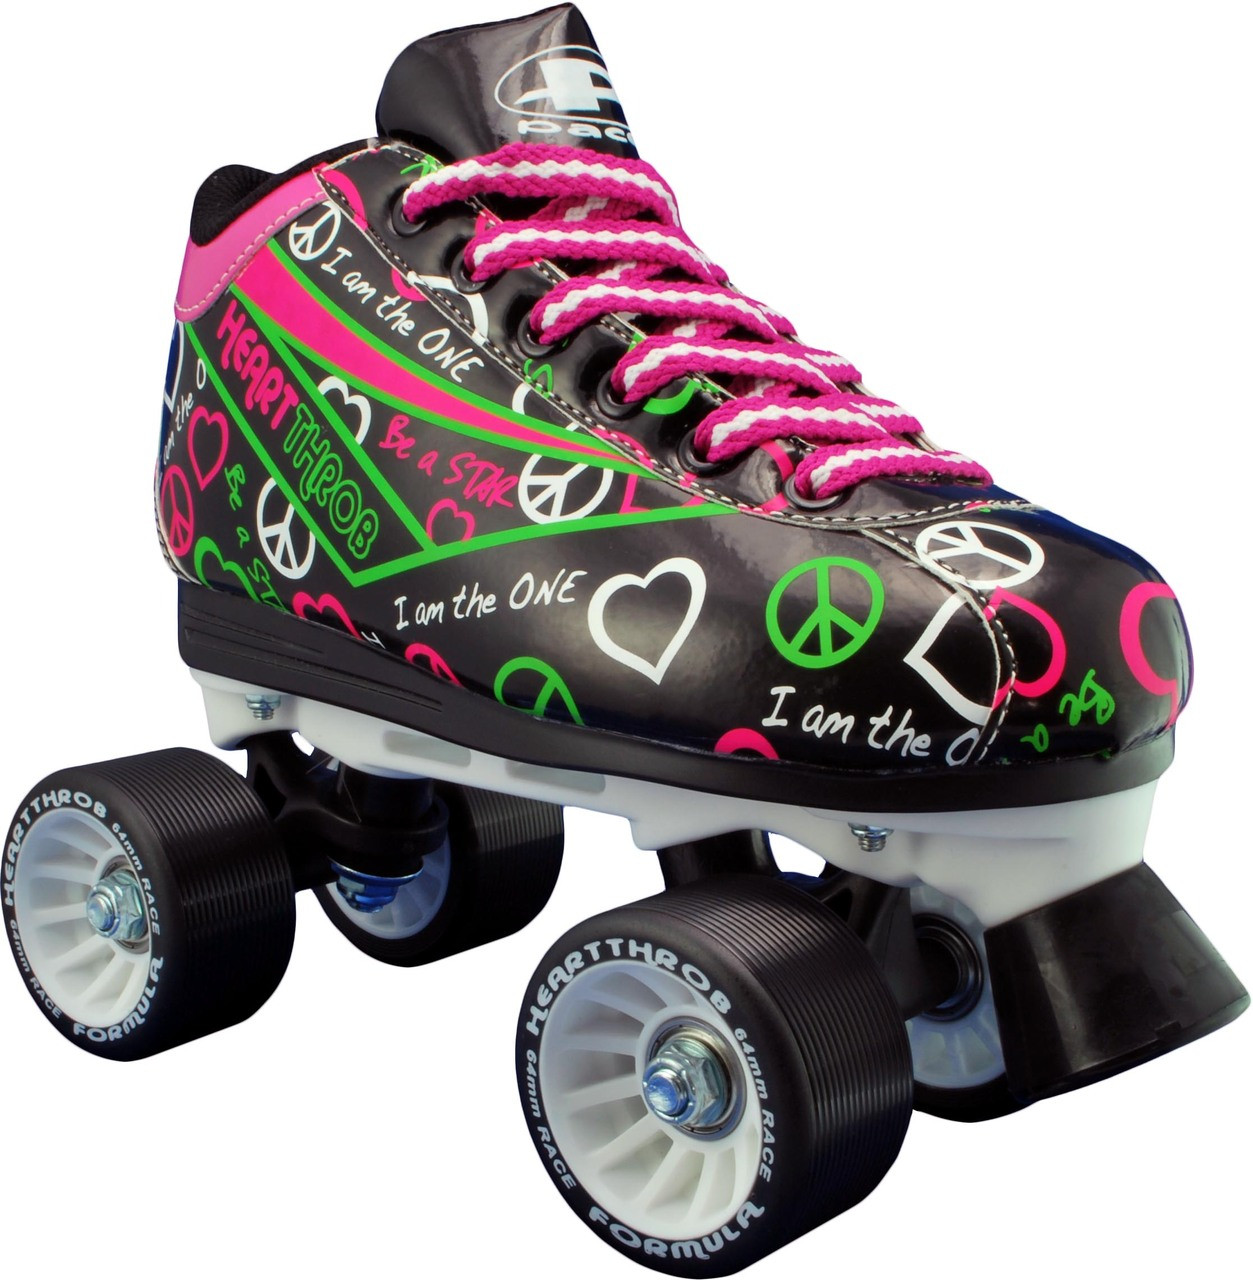 Black Pacer Heart Throb Speed Skates